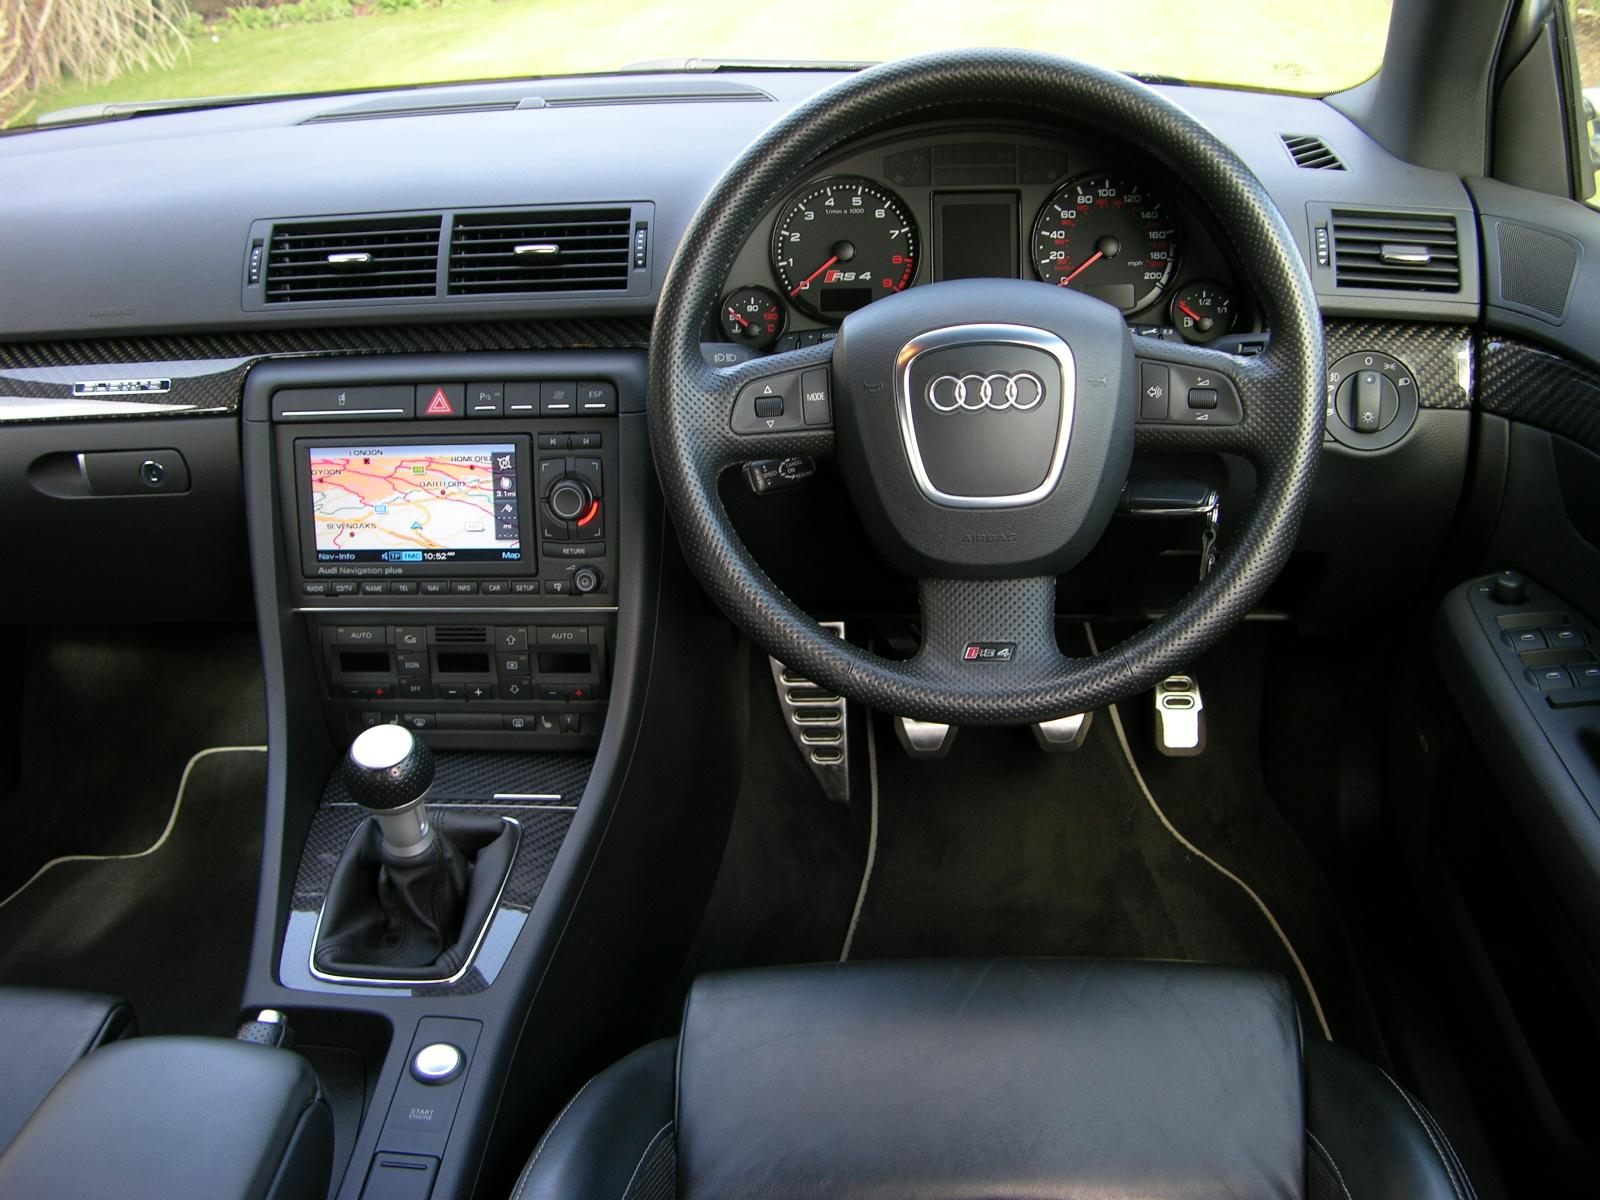 File int rieur audi rs4 wikimedia commons for Interieur cuir audi a4 b7